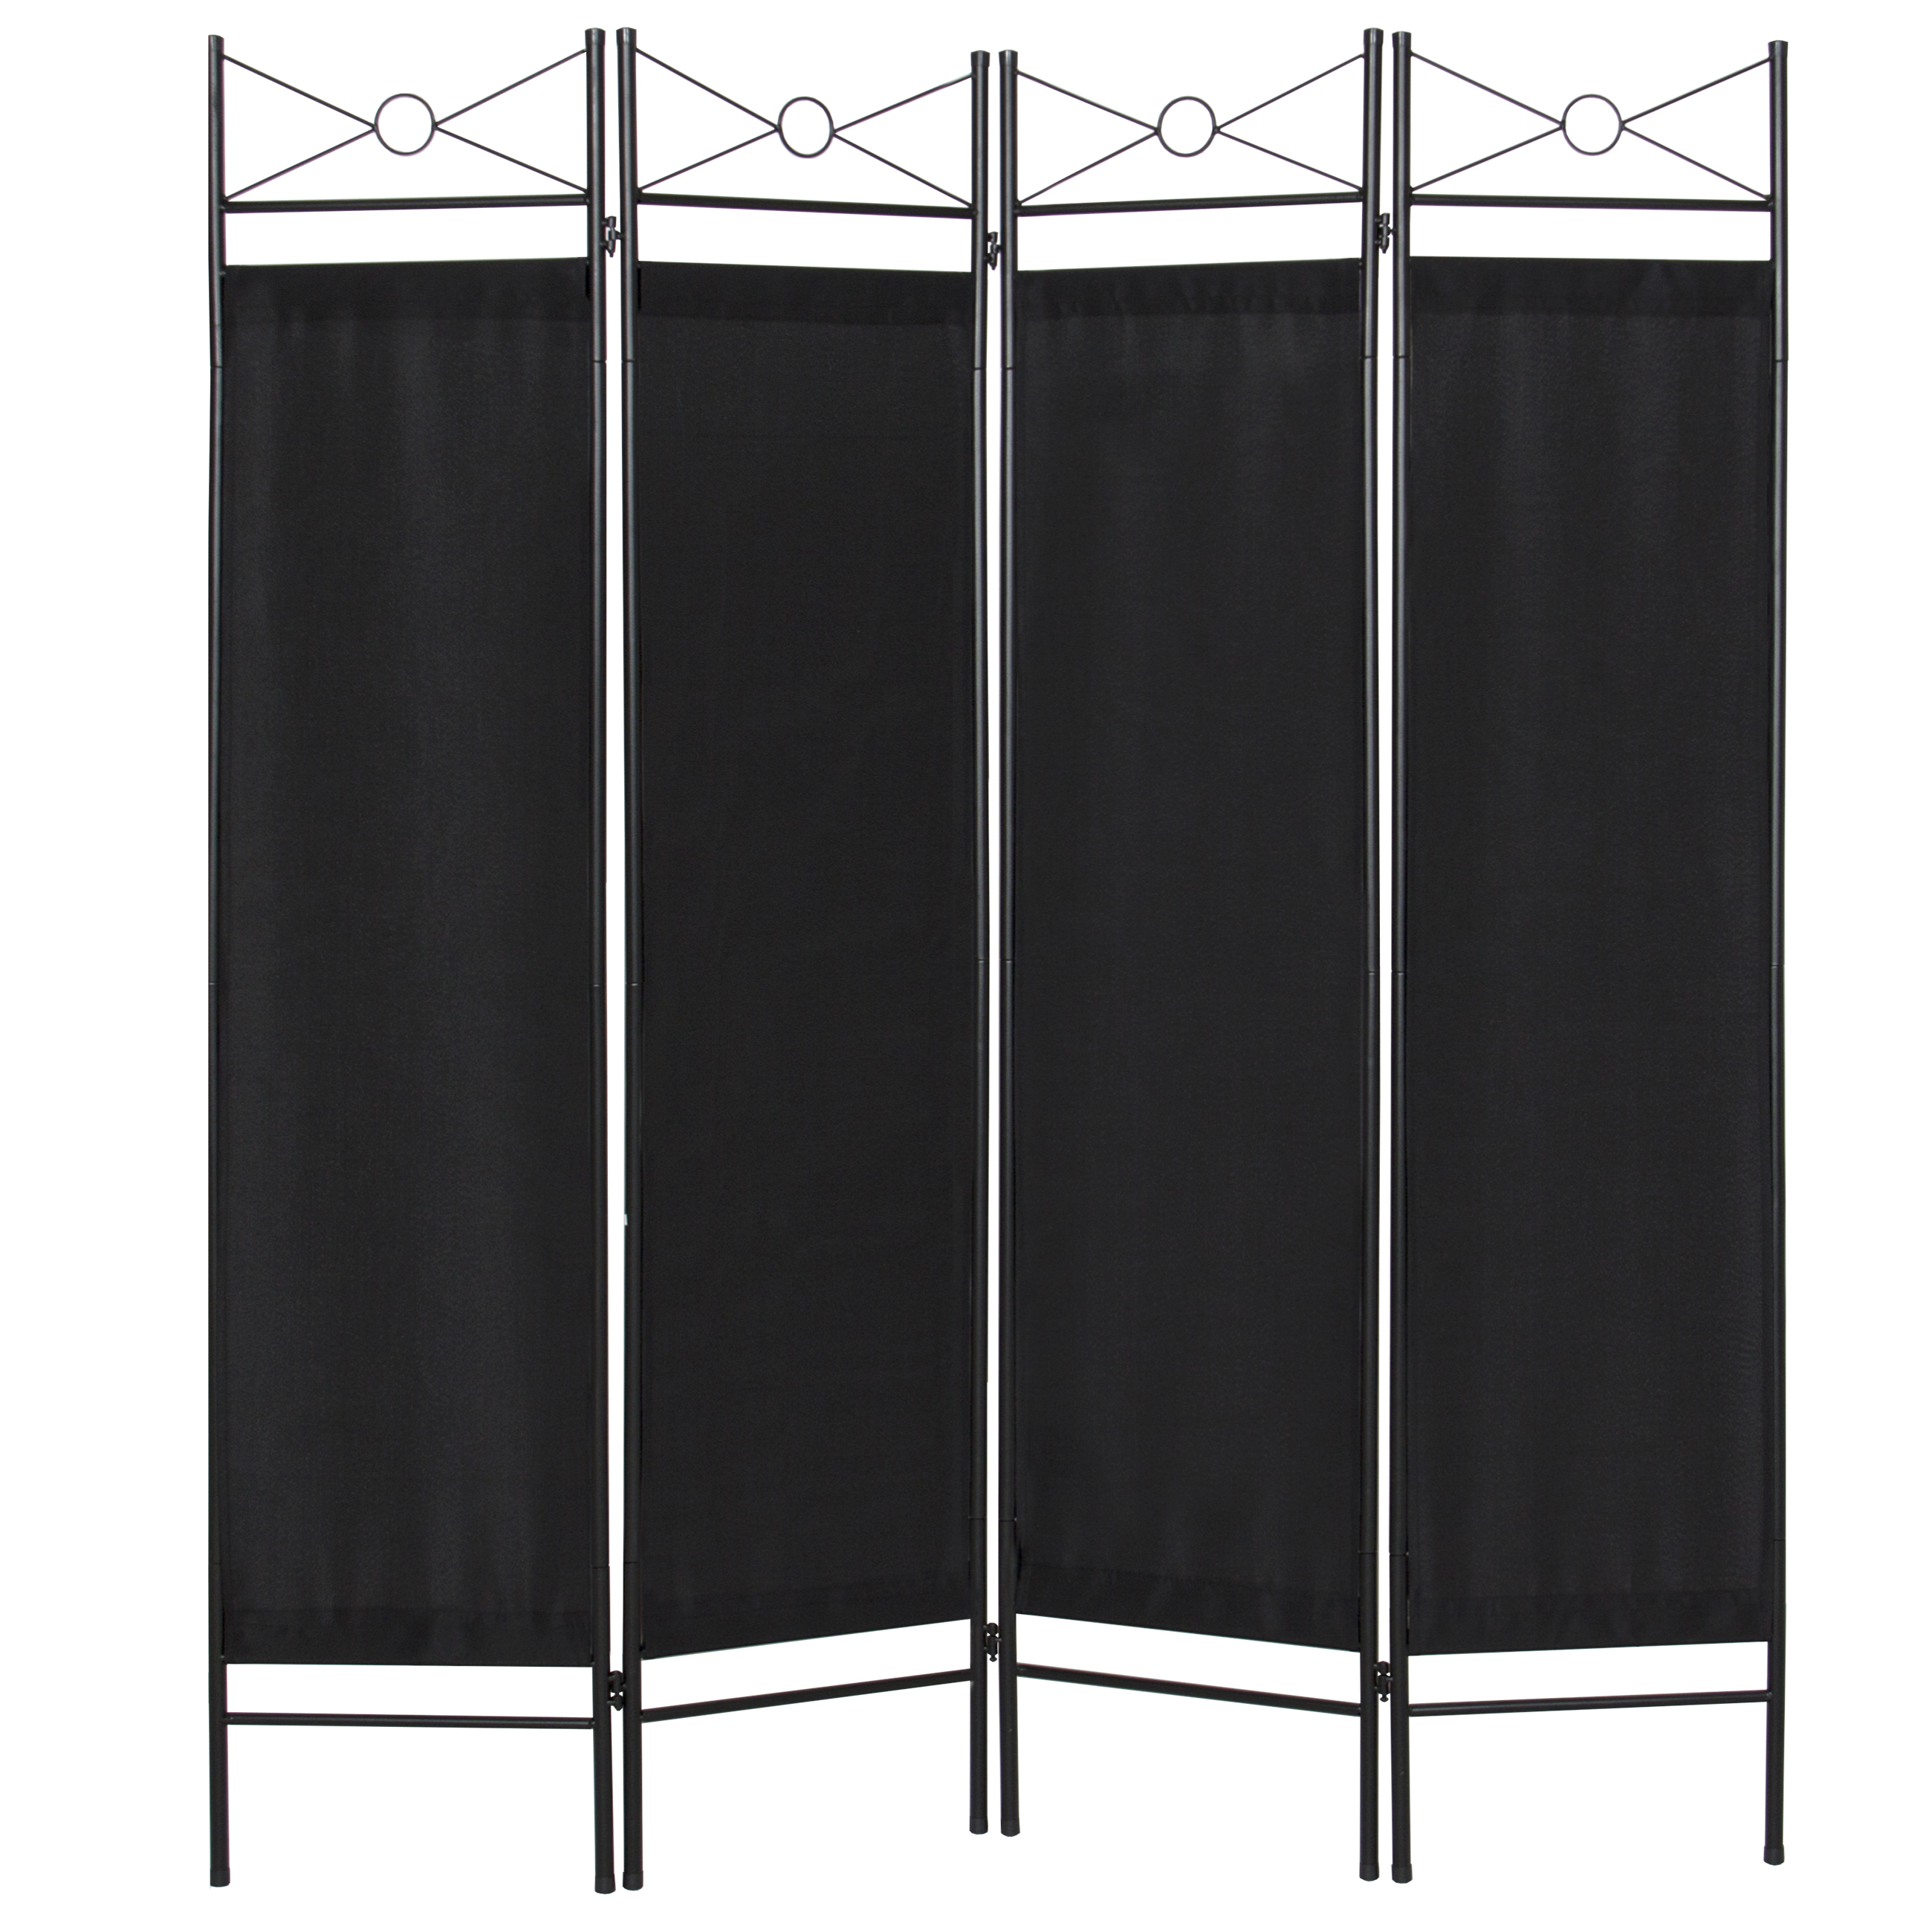 Best Choice Products Home Accents 4 Panel Room Divider-Black by Best Choice Products